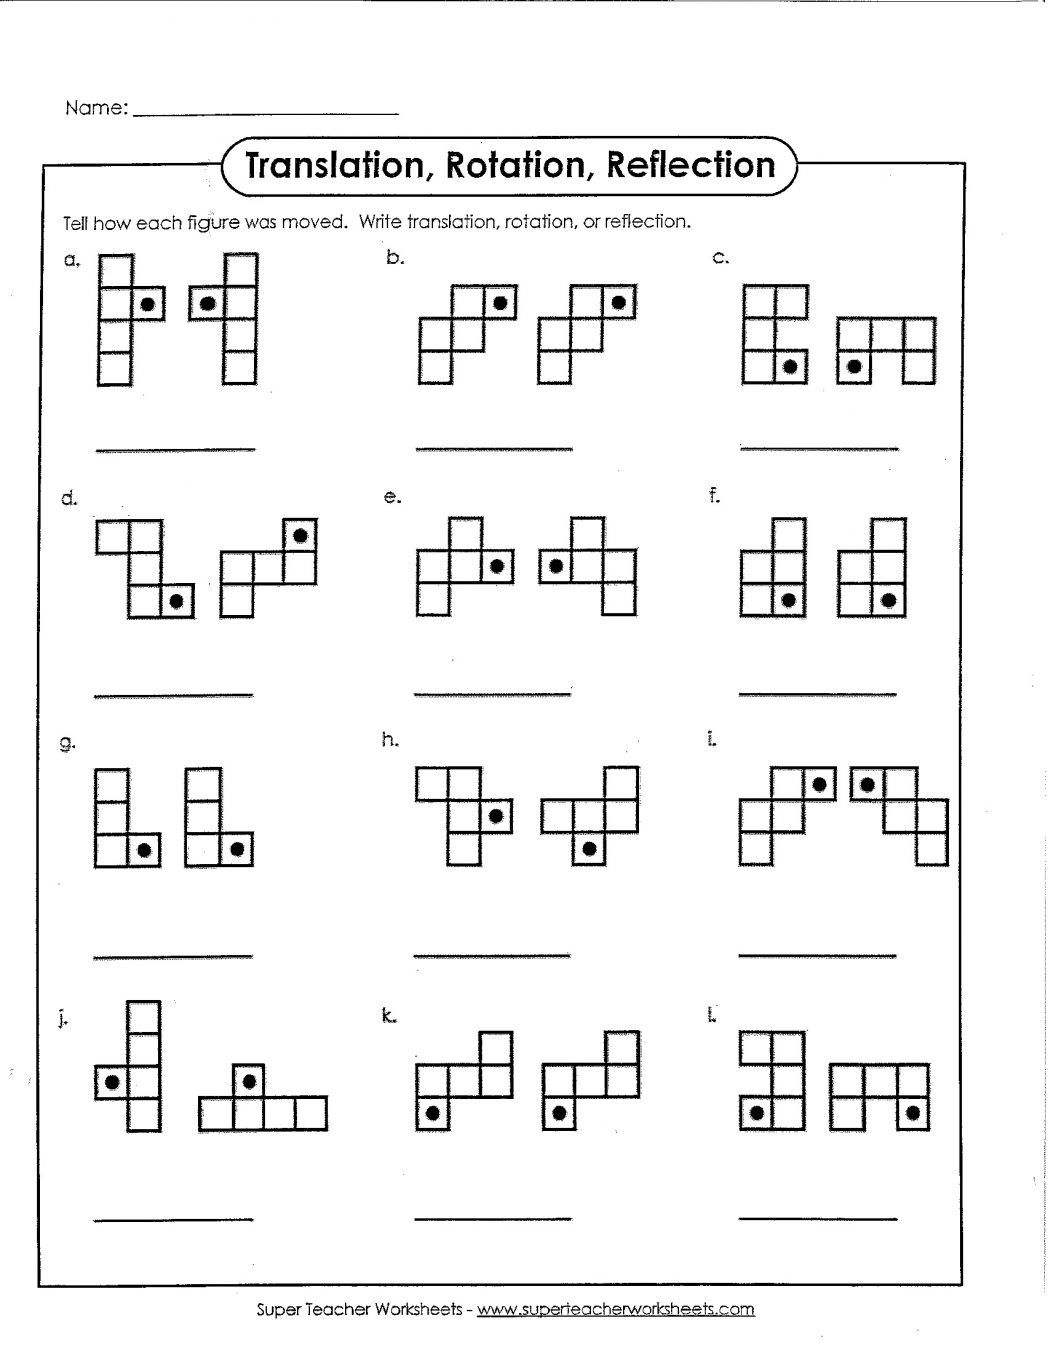 10 Best Perimeter Worksheets For Middle School Images On